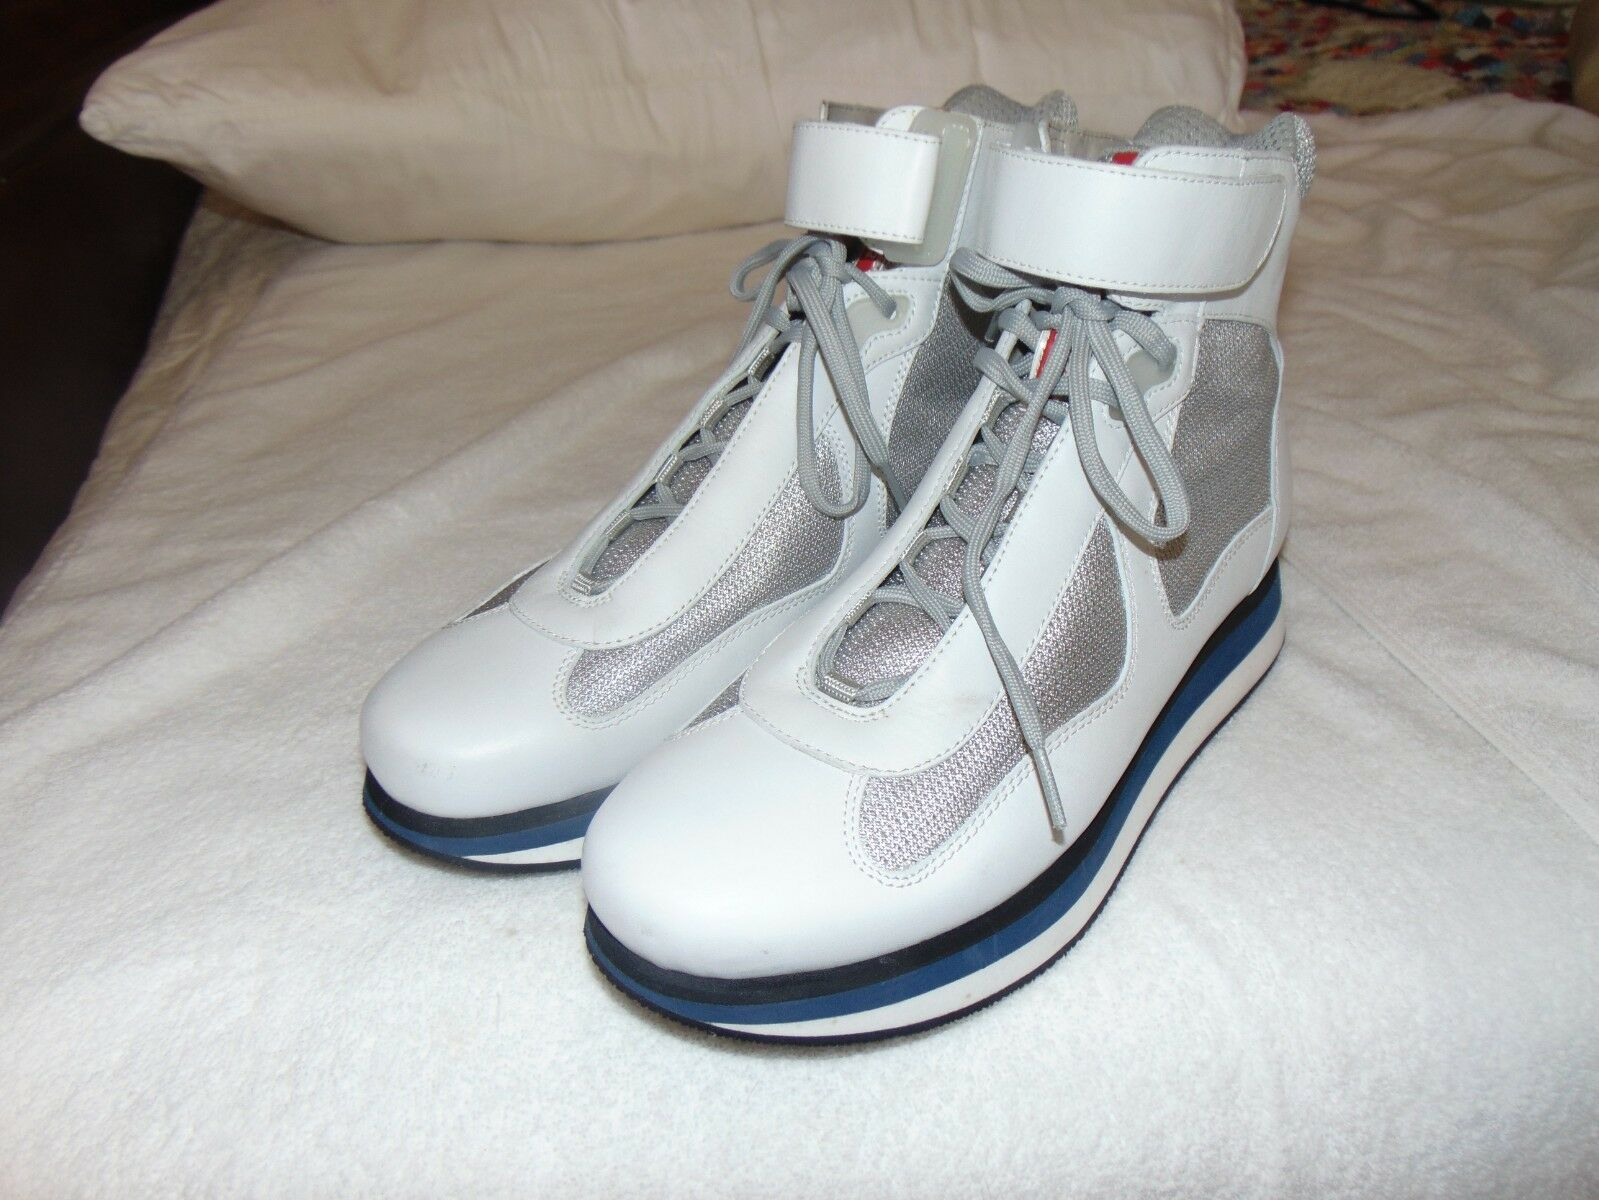 Classic Prada Homme Americas Cup VEL Strap High Top baskets 8 US 9 Sold Out